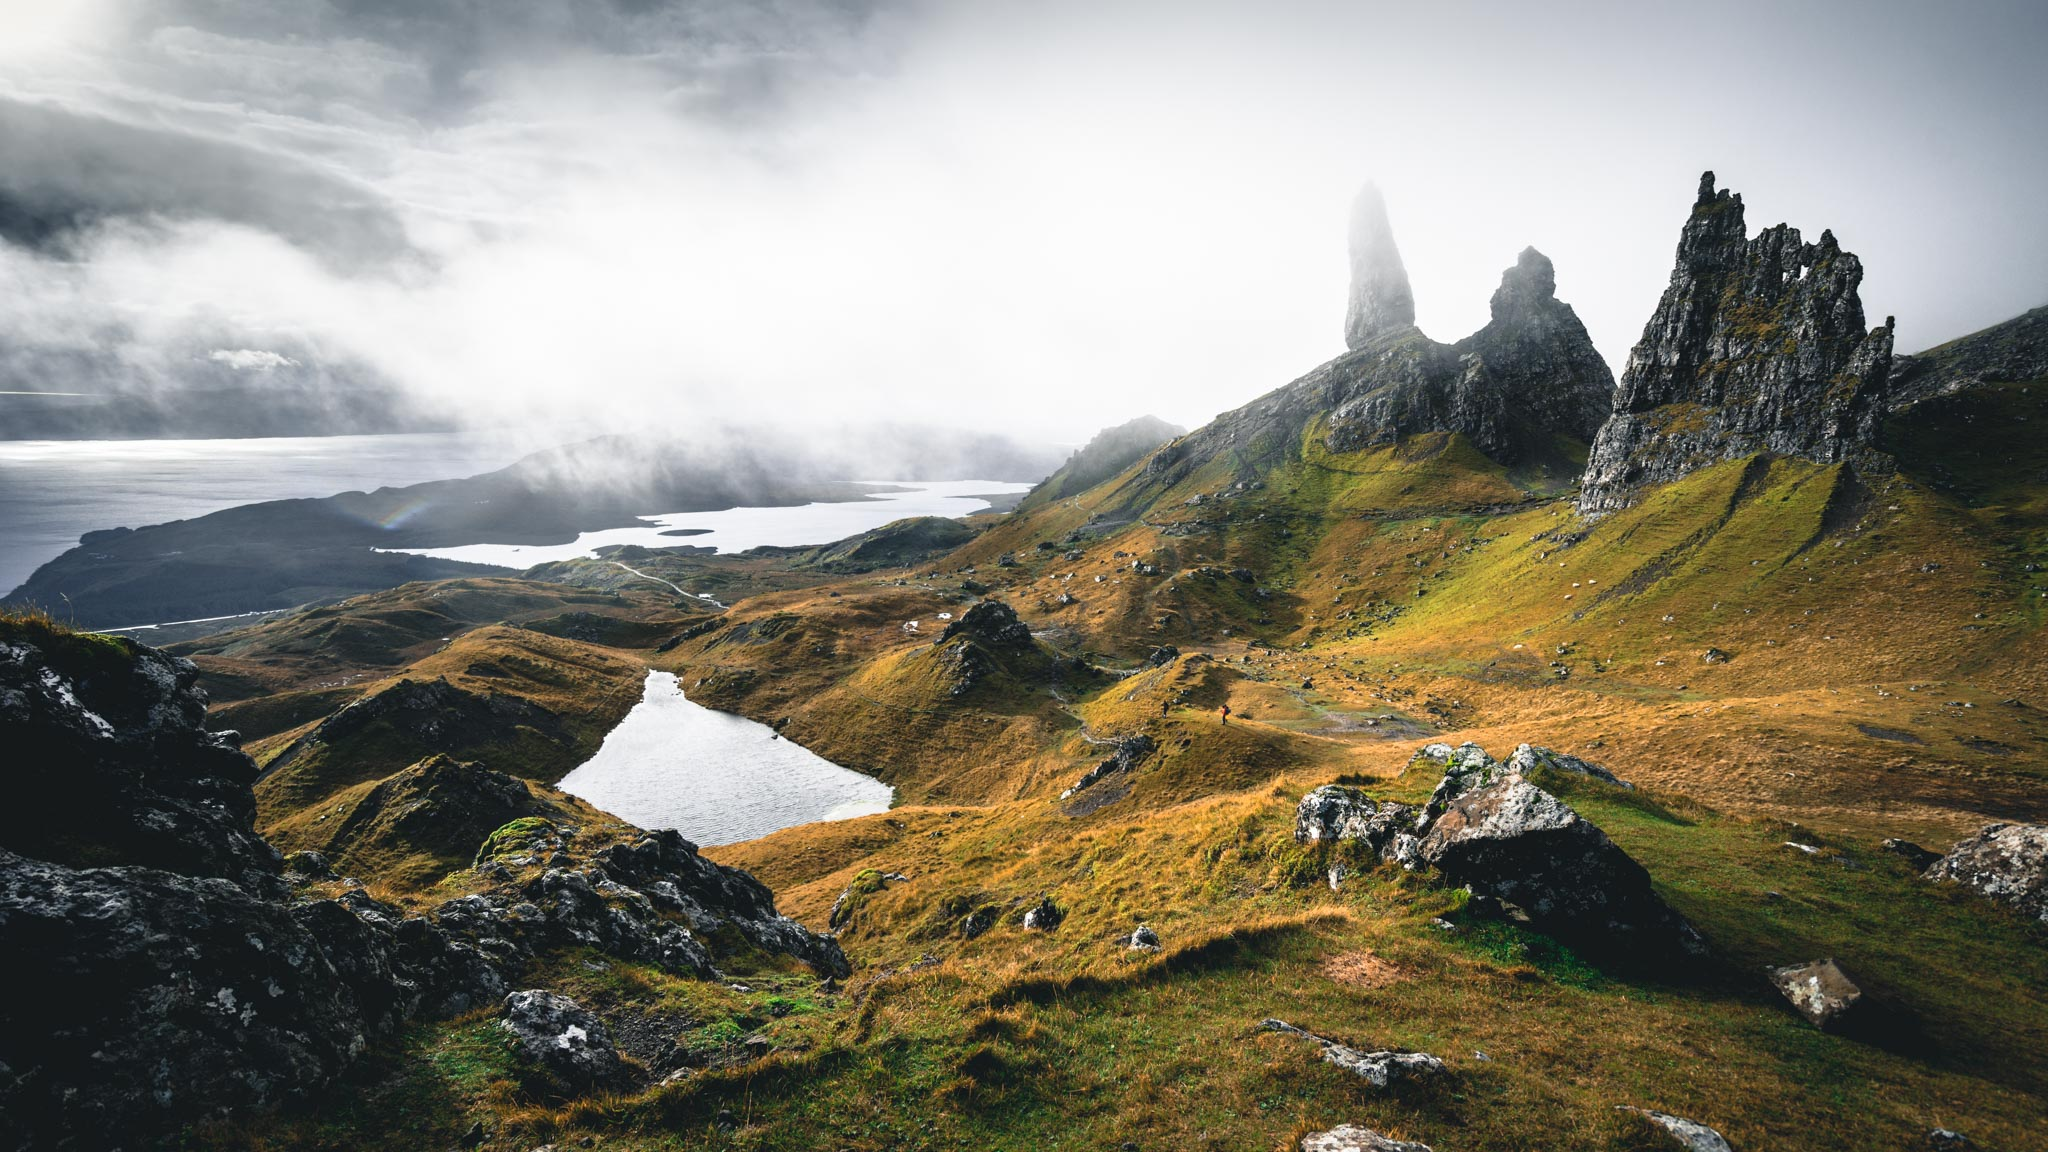 mickael-peralta-photographe-outdoors-aventures-france-ecosse-22